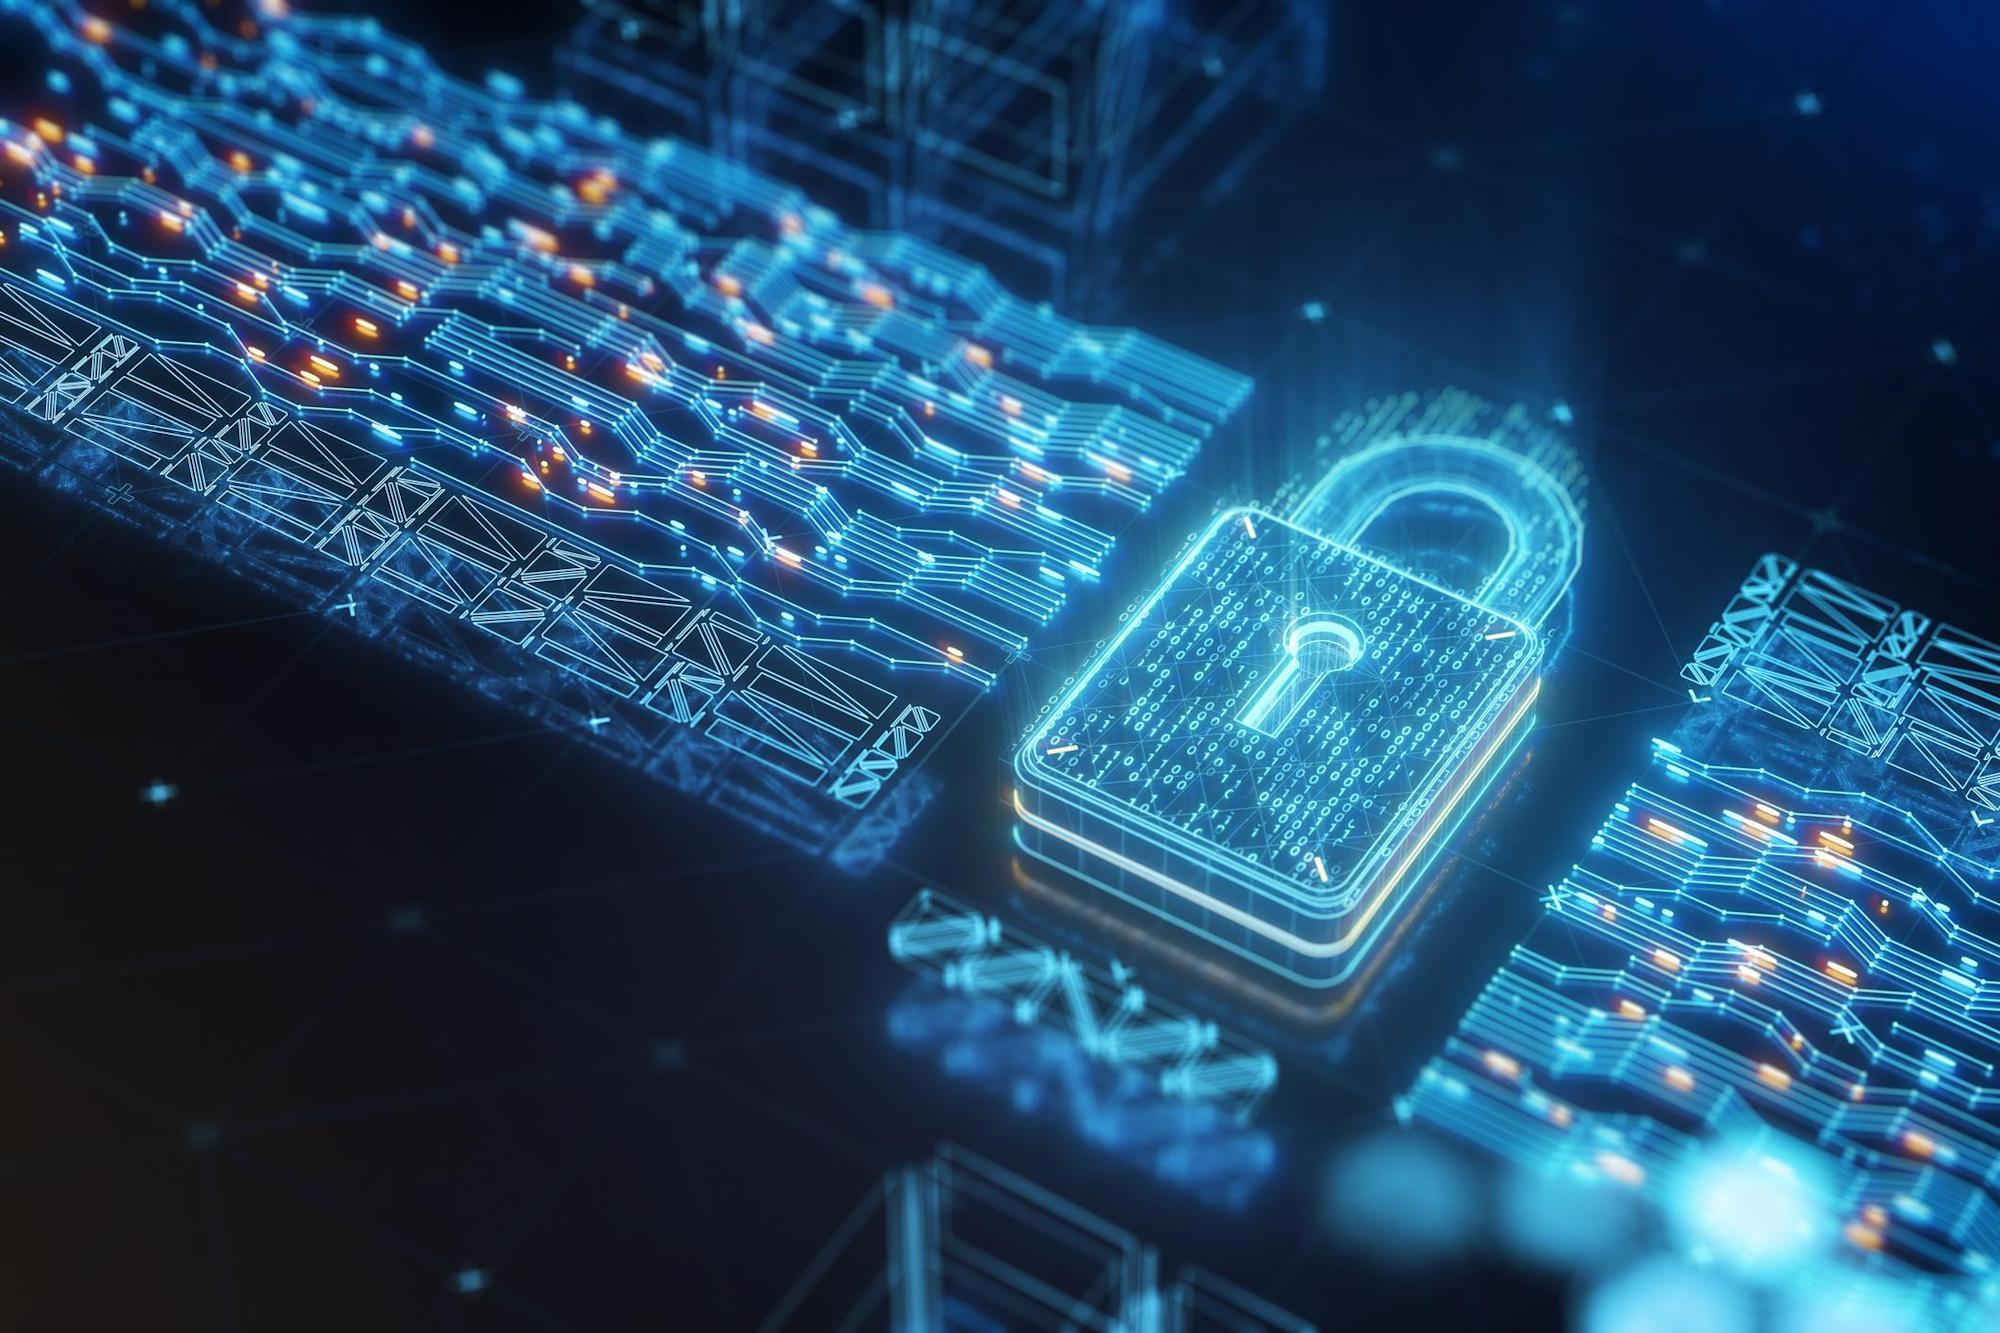 Cape Privacy announces $20M Series A to help companies securely share data